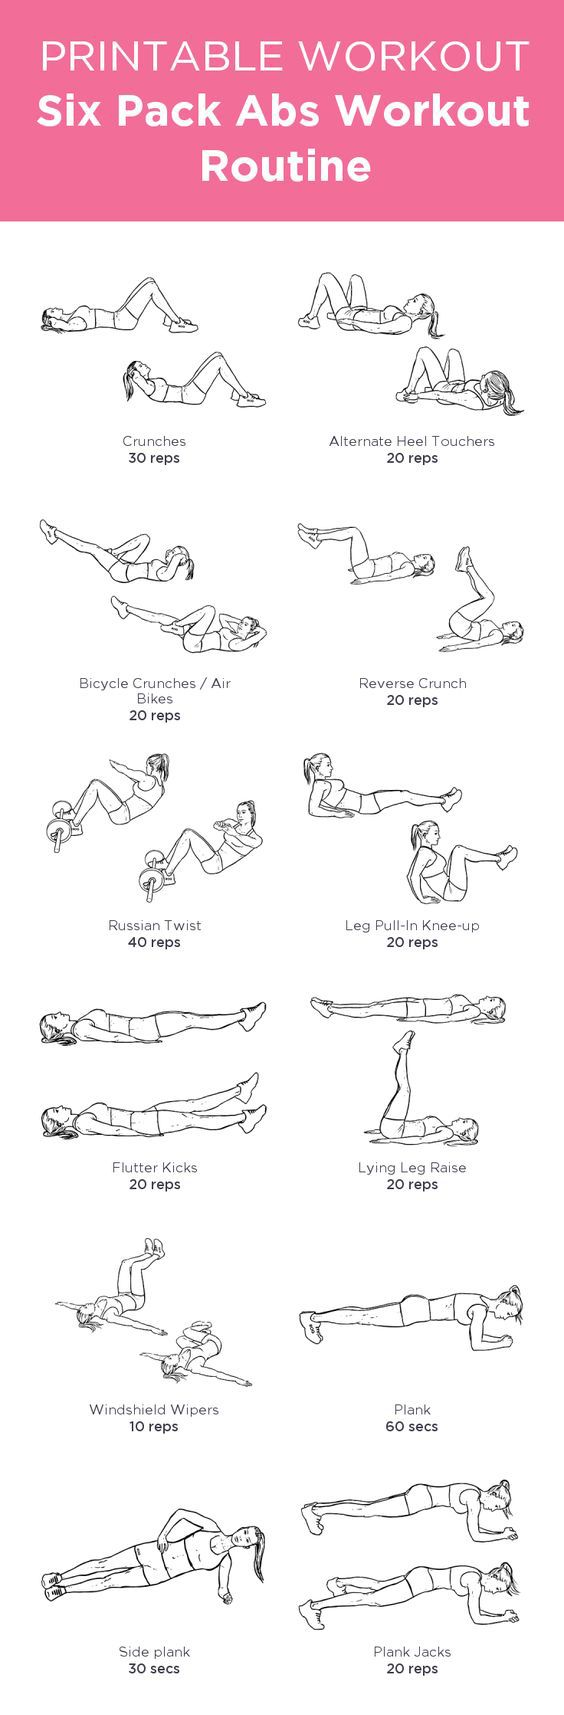 Six Pack Abs Workout | Posted By: AdvancedWeightLossTips.come